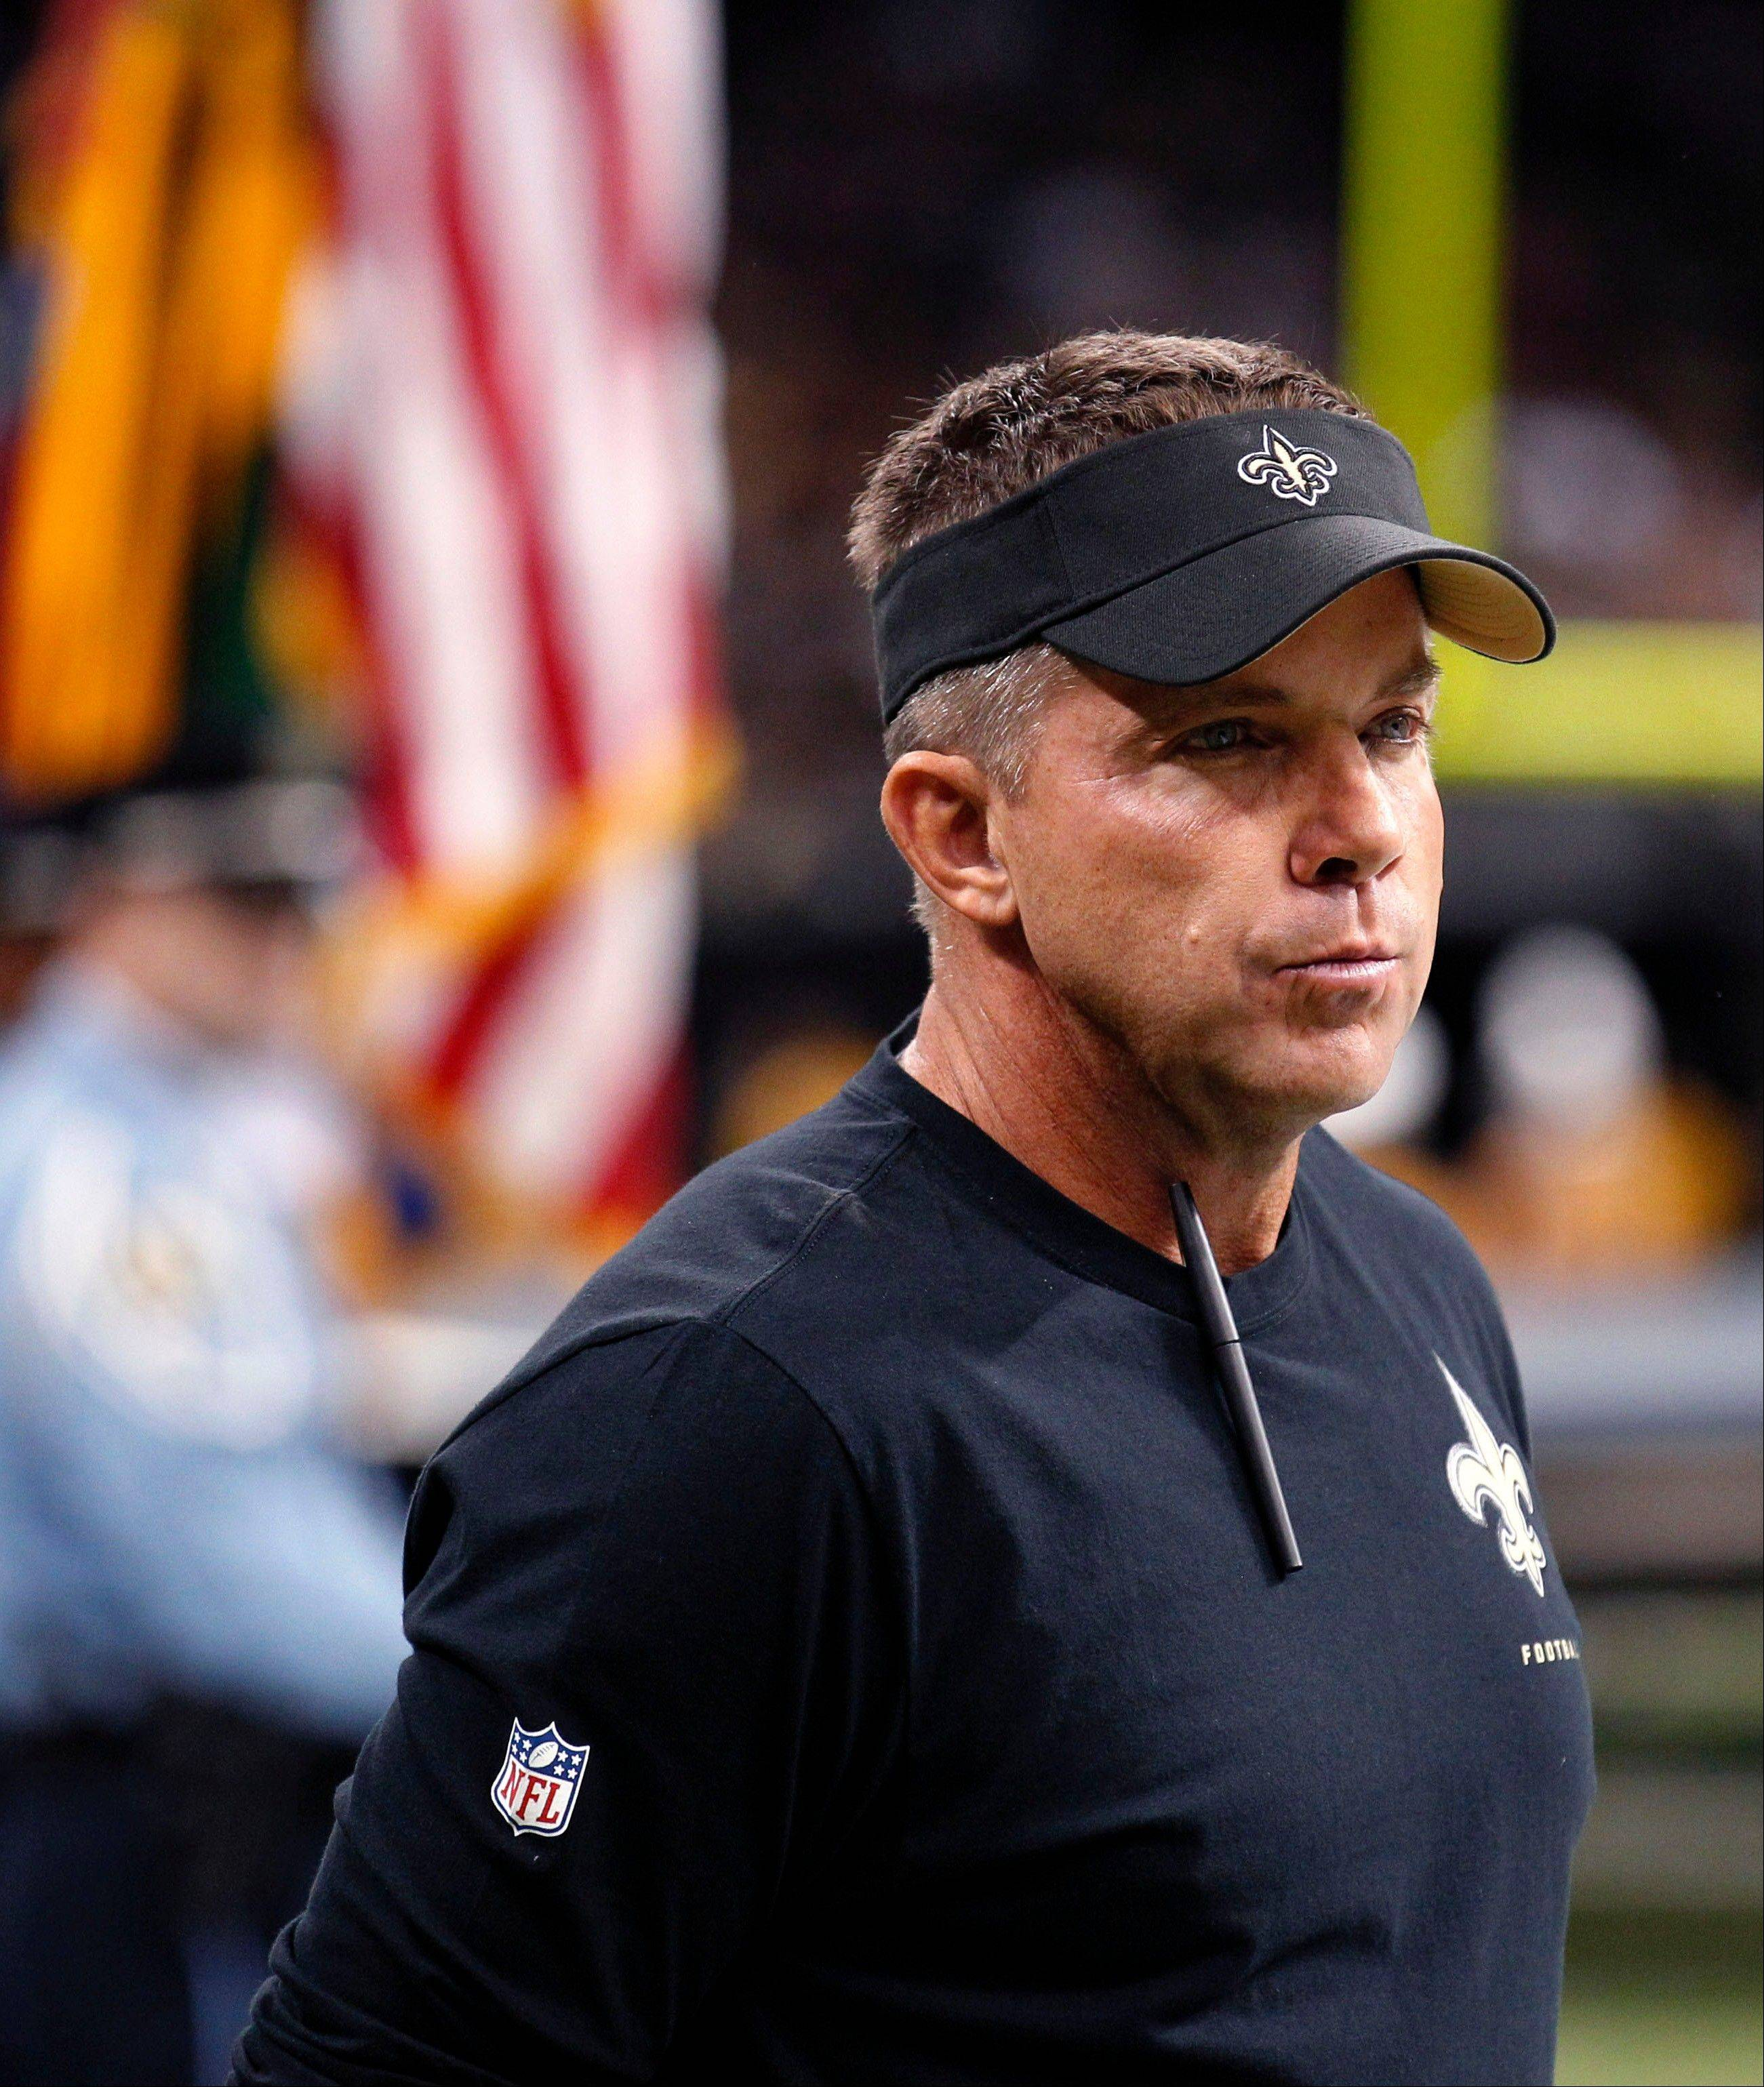 New Orleans Saints head coach Sean Payton watches introductions from the sideline before an NFL football game against the Atlanta Falcons in New Orleans, Sunday, Sept. 8, 2013. The Saints won 23-17.